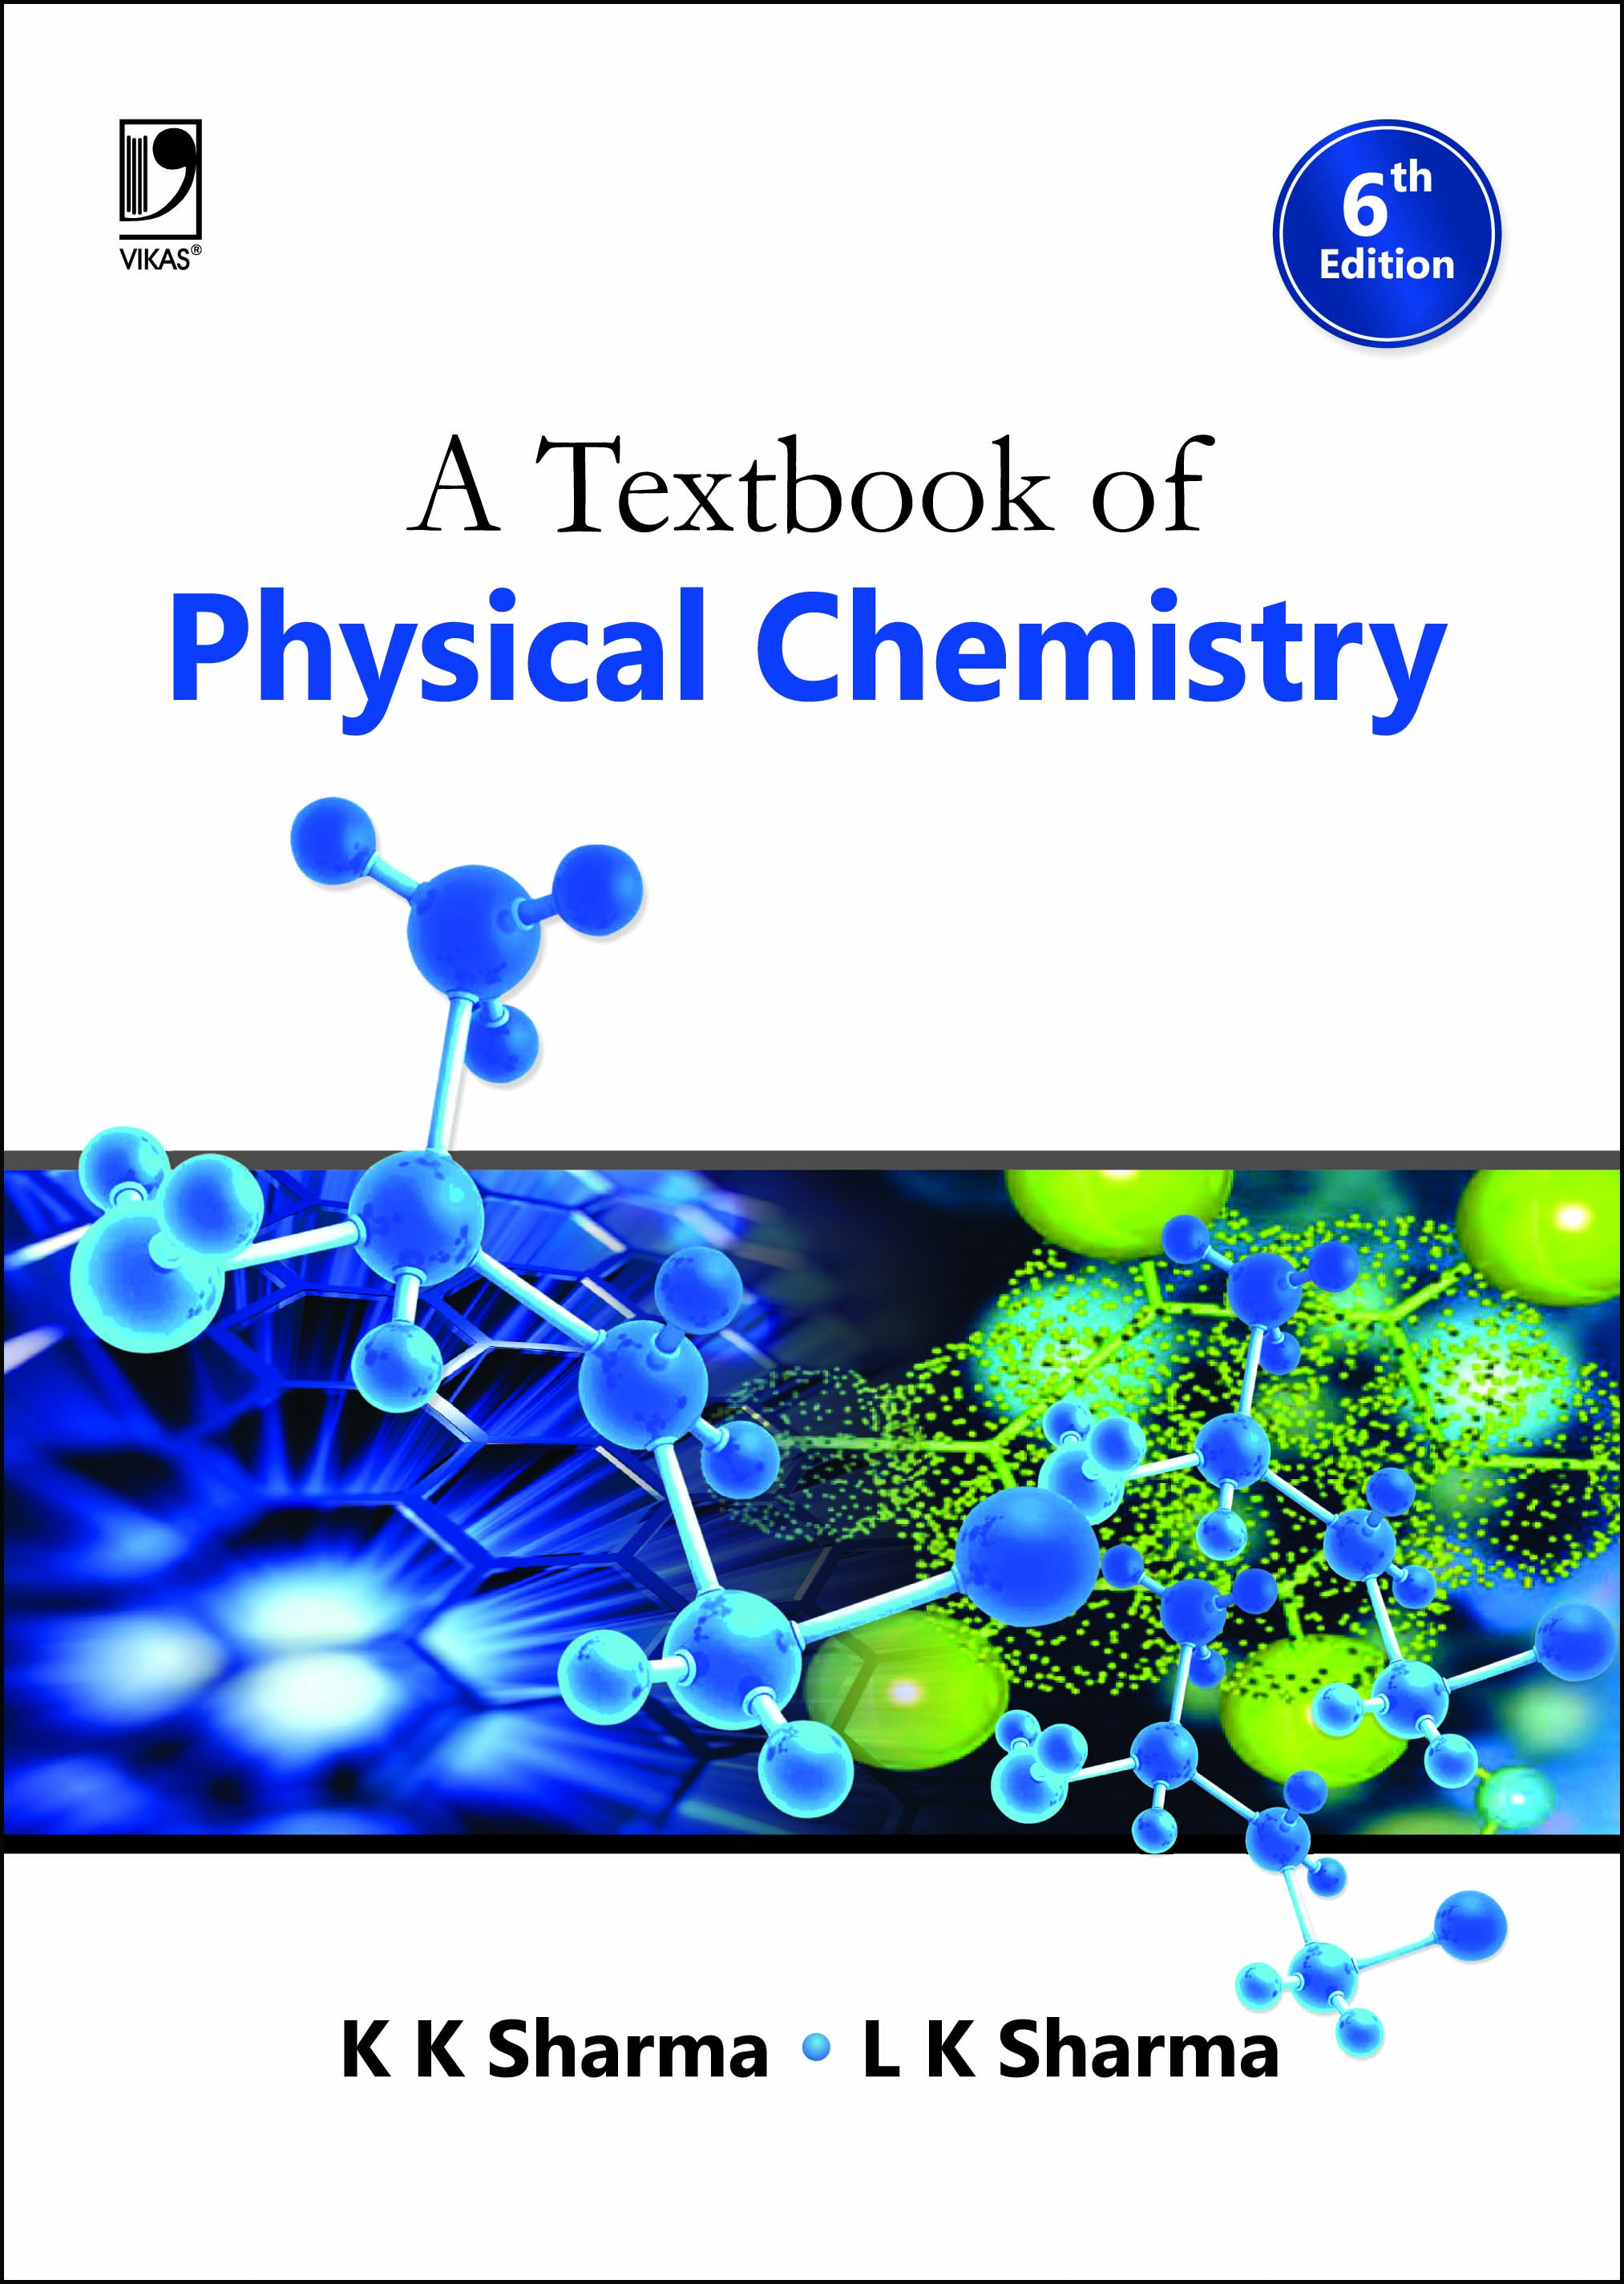 solid state chemistry book 4th edition pdf